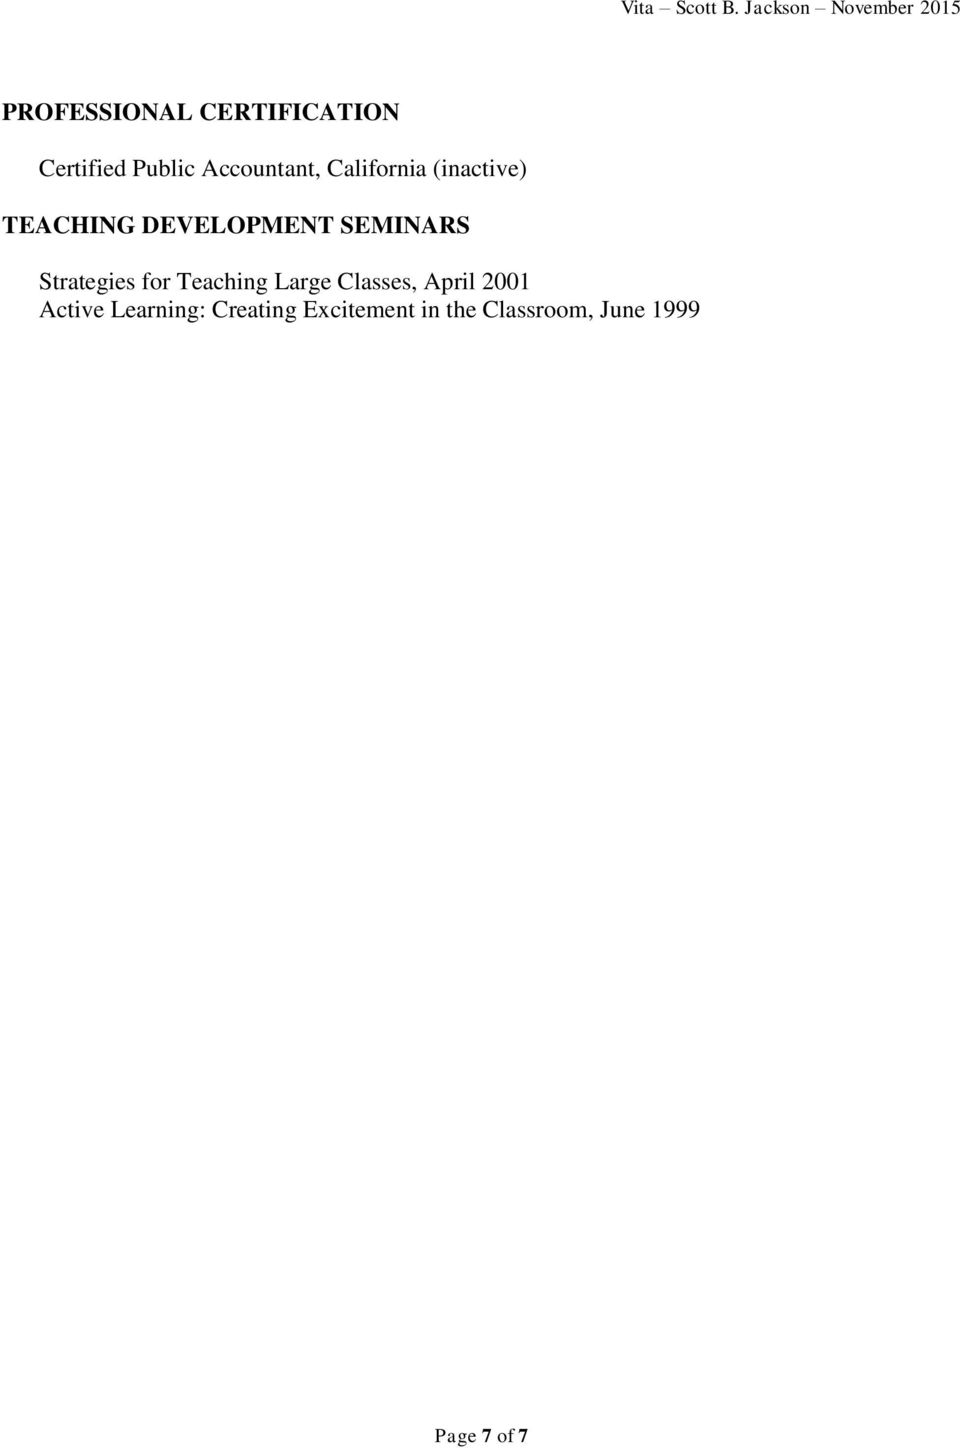 Strategies for Teaching Large Classes, April 2001 Active